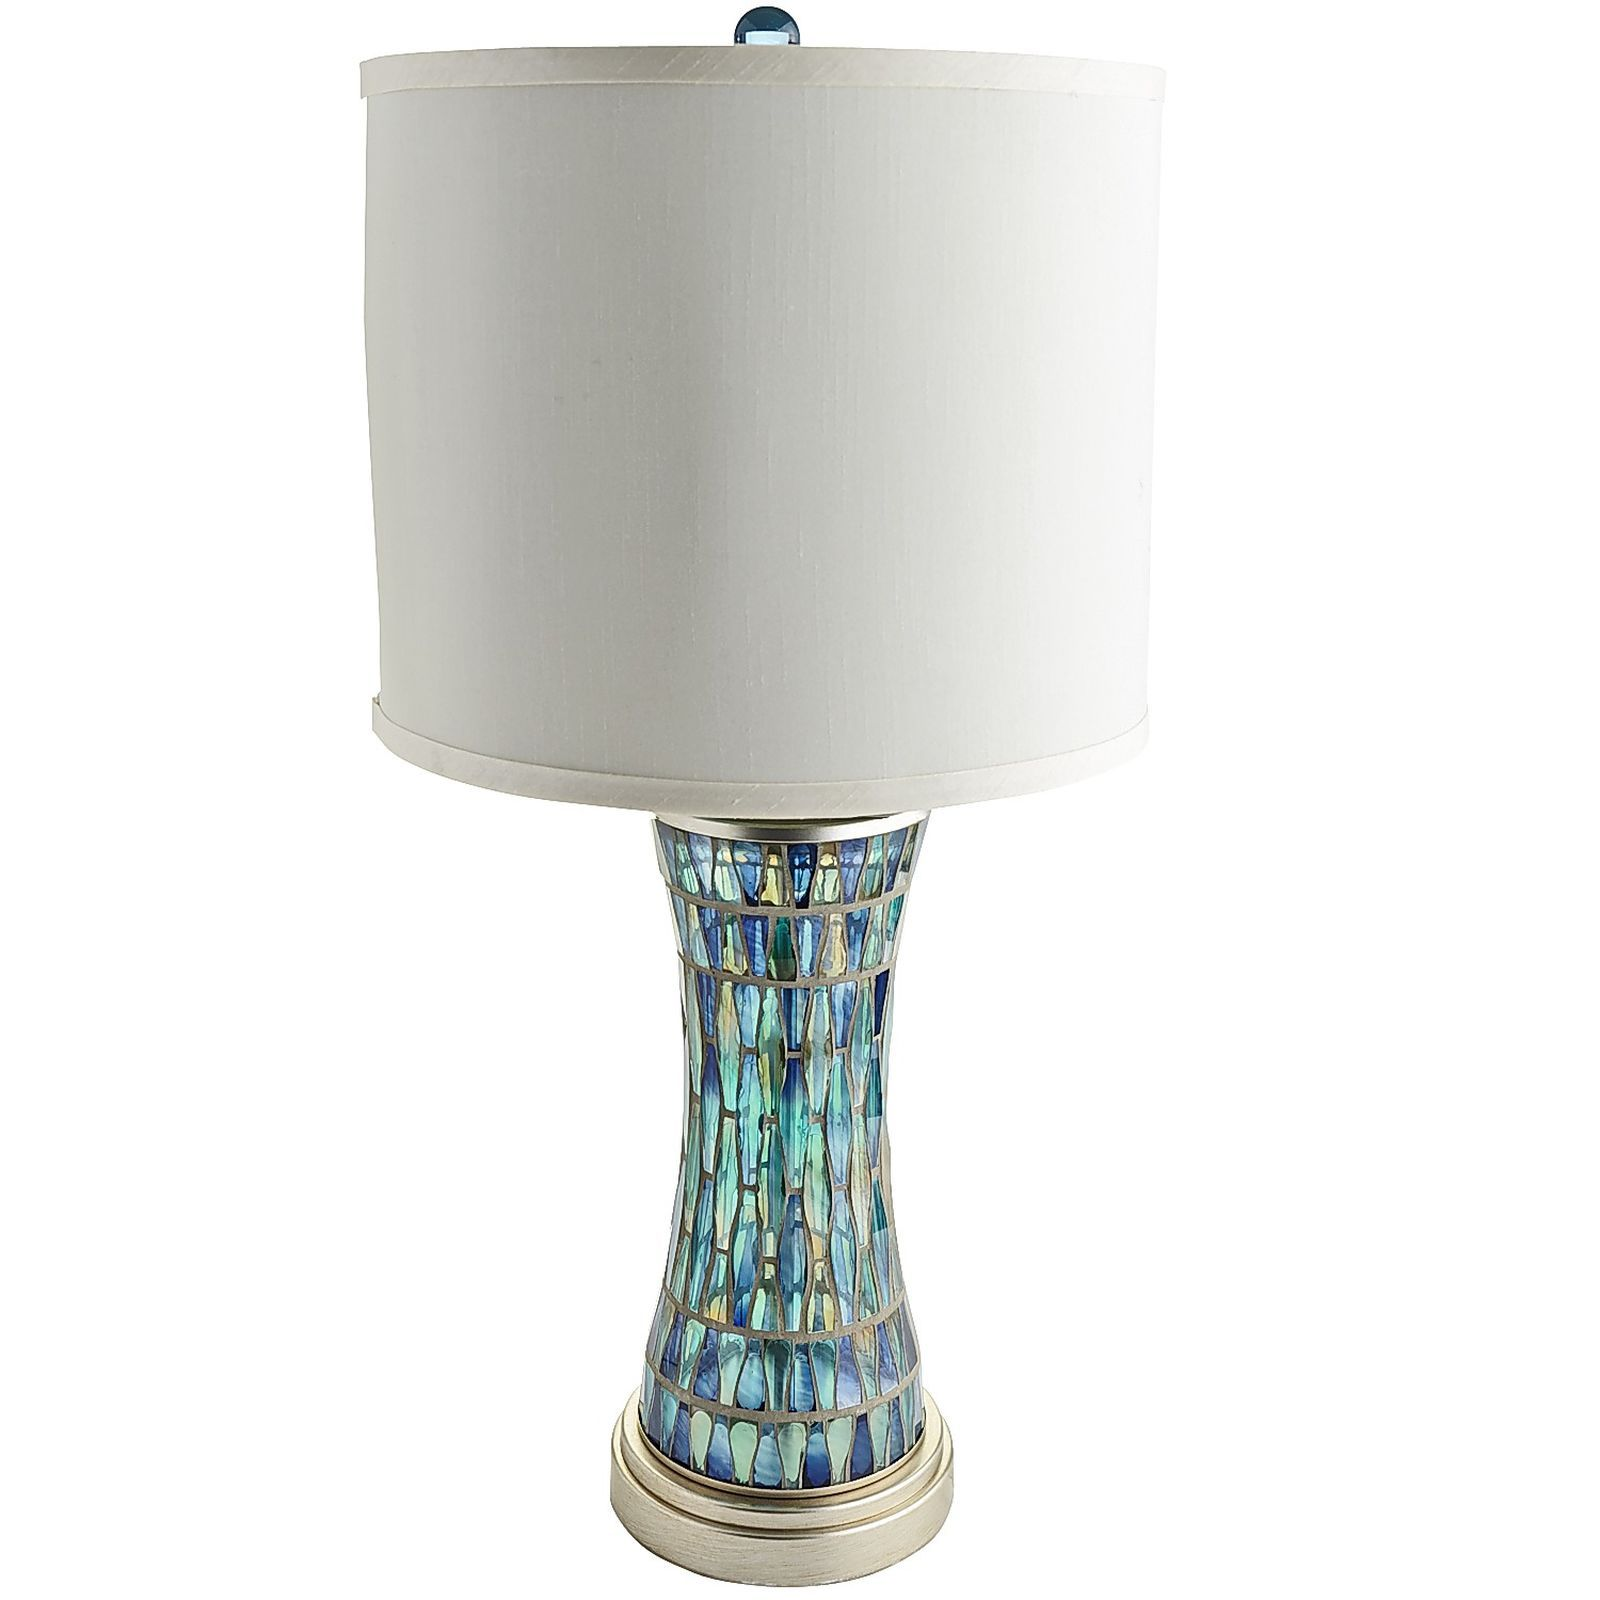 dale top lamp table lamps chip colored blue mosaic tiffany metal design base glass